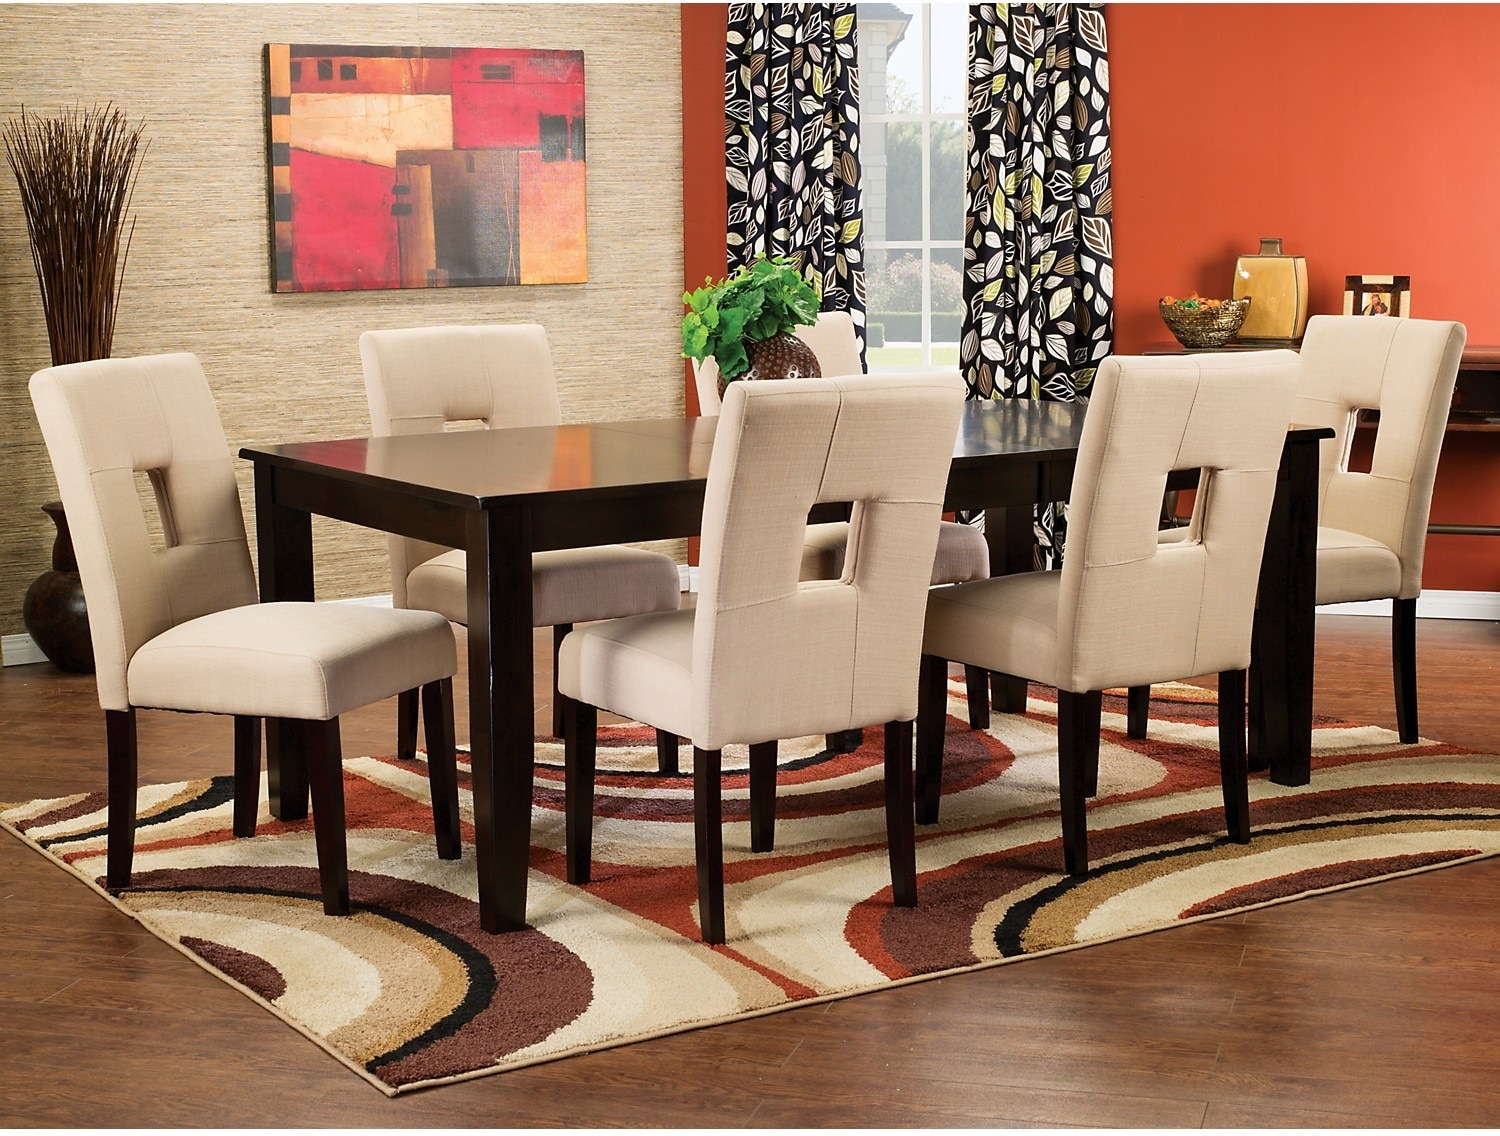 Dining Room Furniture - Dakota 8-Piece Dining Package with Beige Chairs